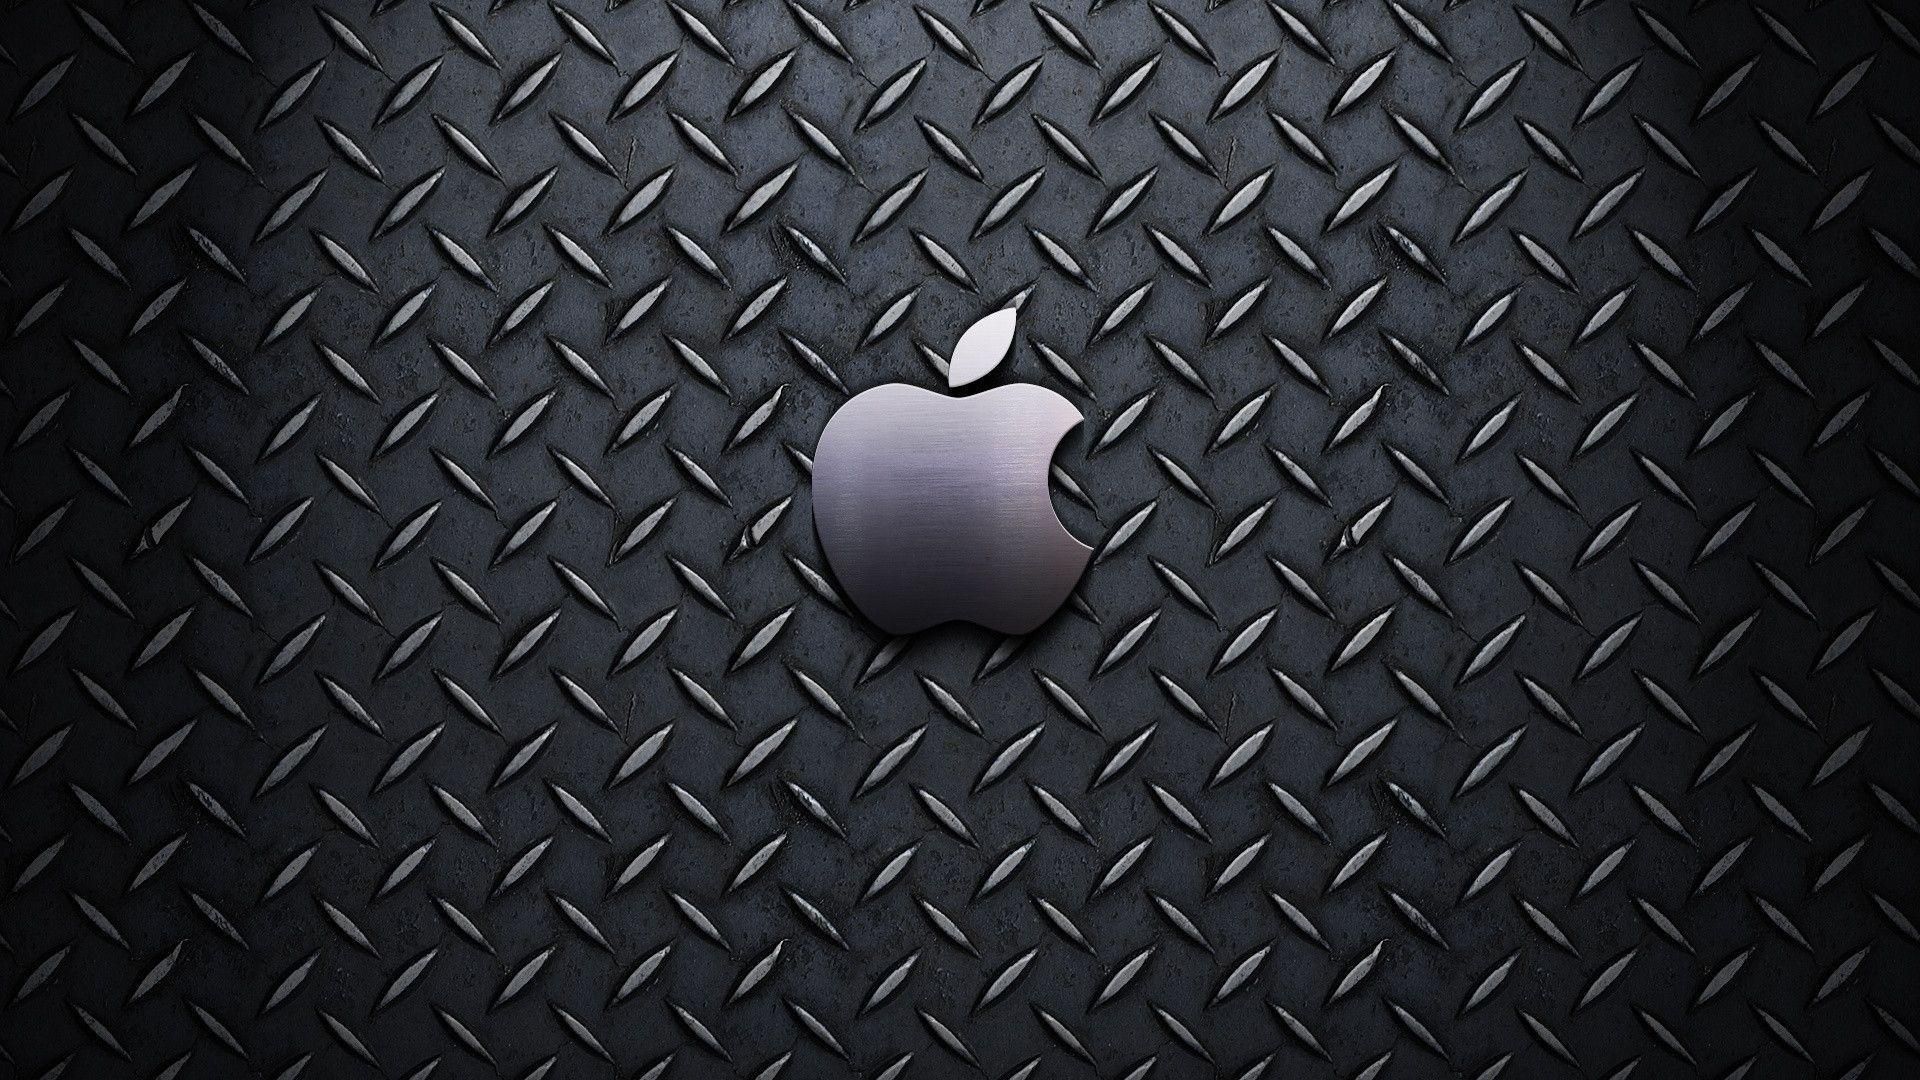 Hd Apple 1080p 2 Wallpapers and Backgrounds